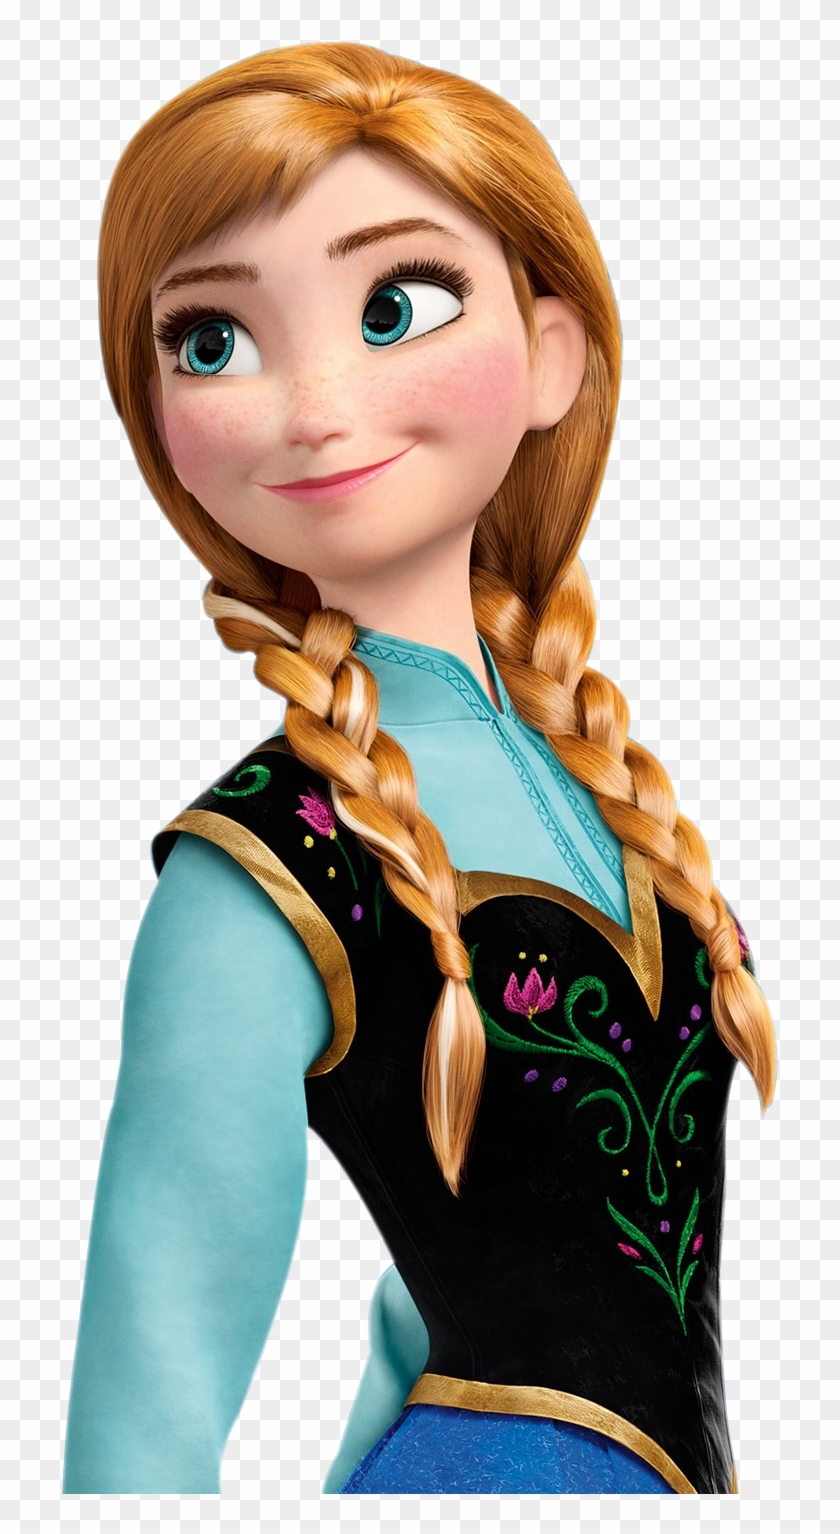 If You Like You Can Get Other Images Of Frozen Movie - Animated Movie Girl Characters Clipart #989376